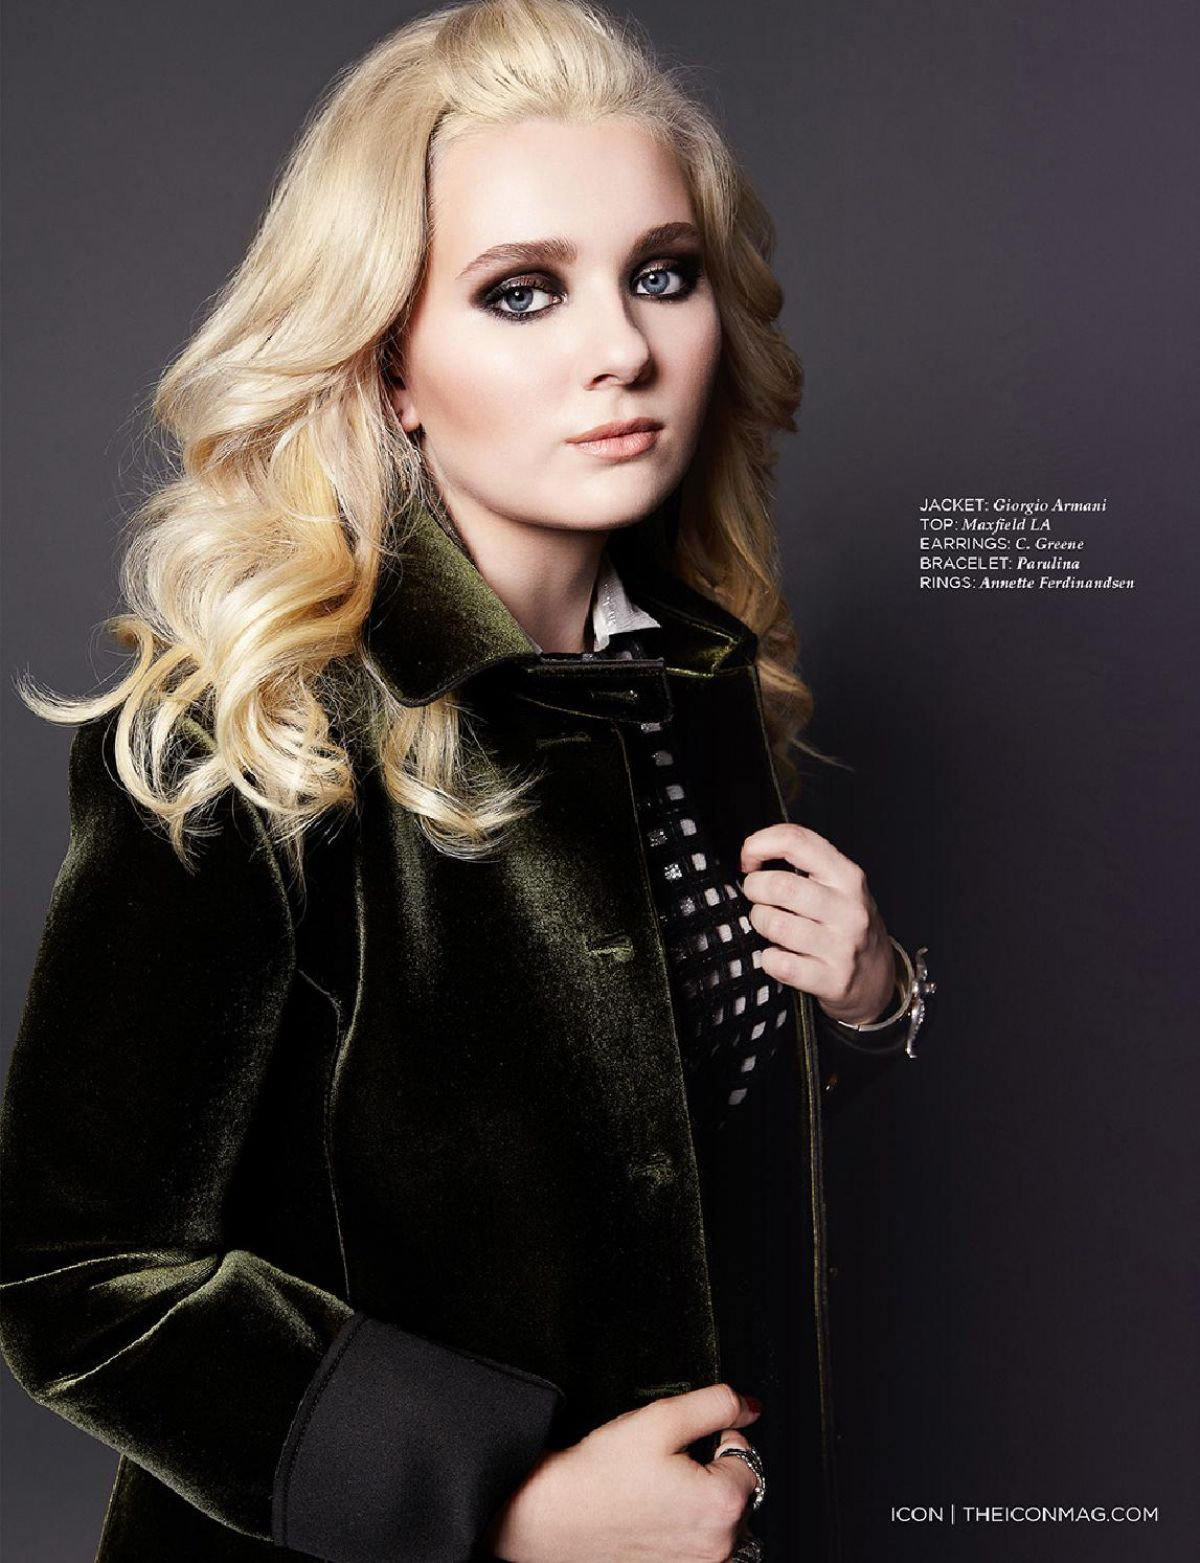 ABIGAIL BRESLIN in Icon Magazine New Year 2014 Issue